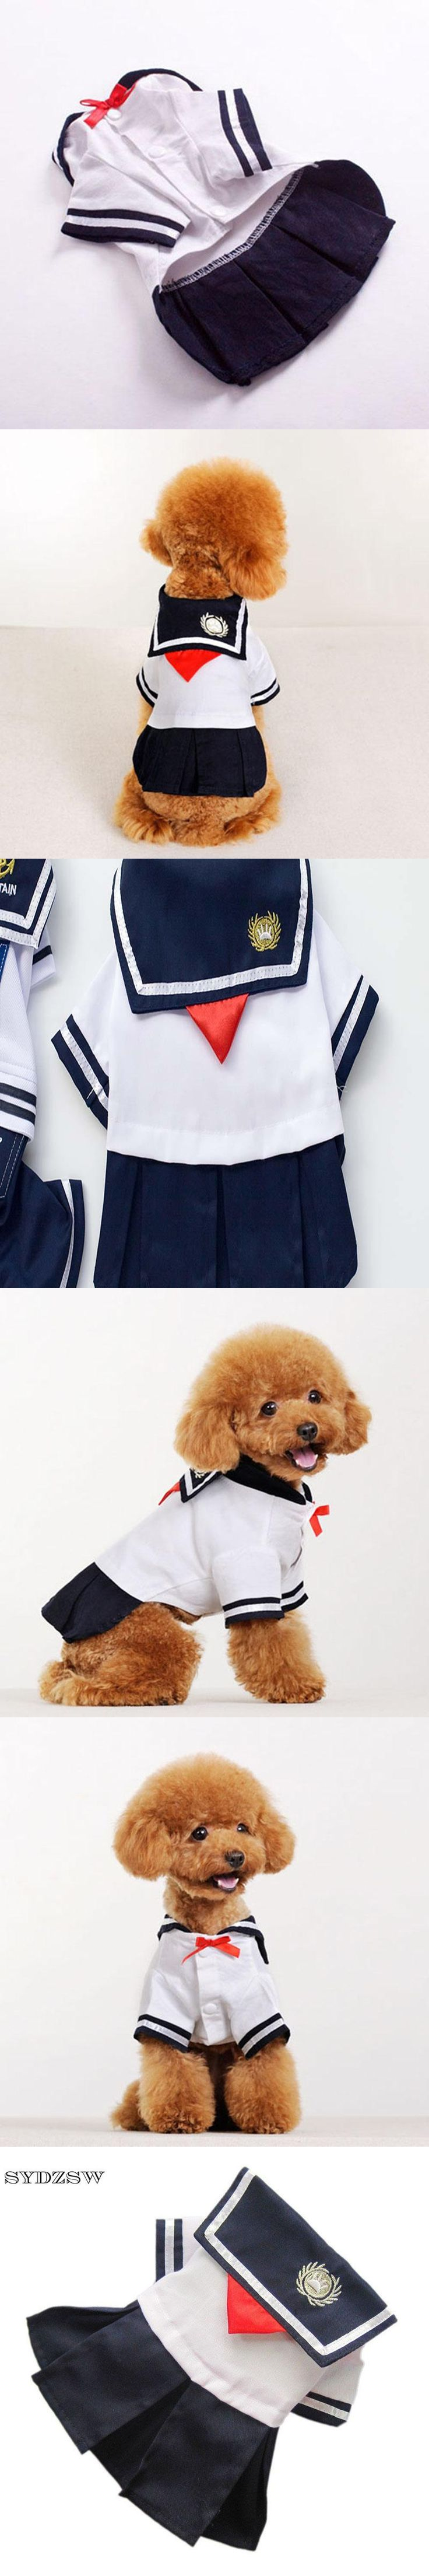 SYDZSW Pet Puppy School Uniform Dog Costume Cute Dog Dress for Chihuahua Terrier Small Dog Pet Cat Clothes in Spring and Summer